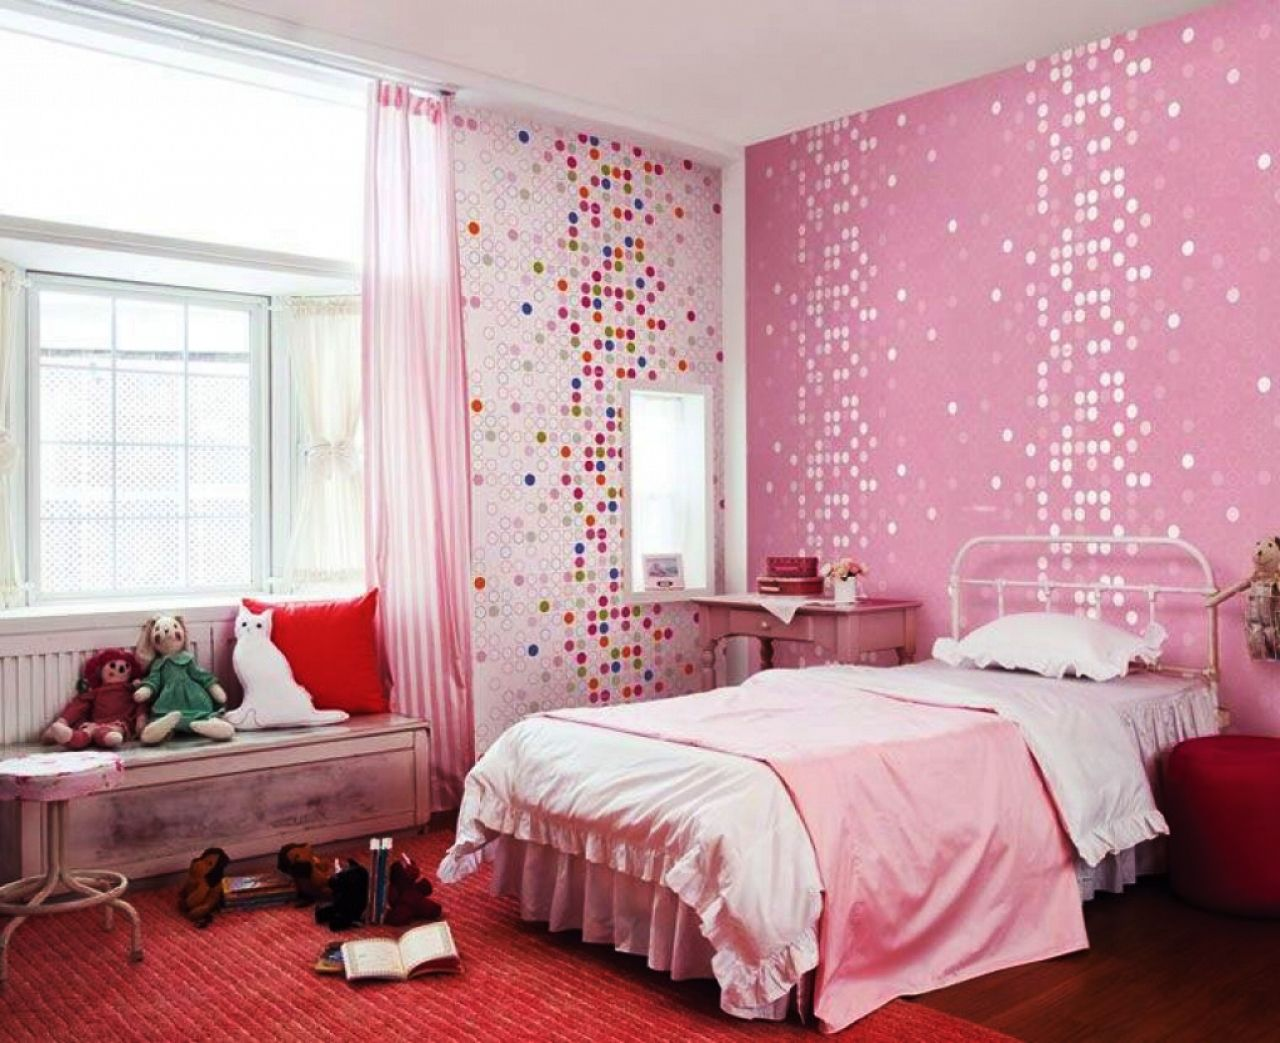 Awesome Kids Room Cute Pink Dotty Wallpaper Girls Bedroom Home Design Girls Bed  Room Design Ideas Girls Teenage Bed Room Interior Design